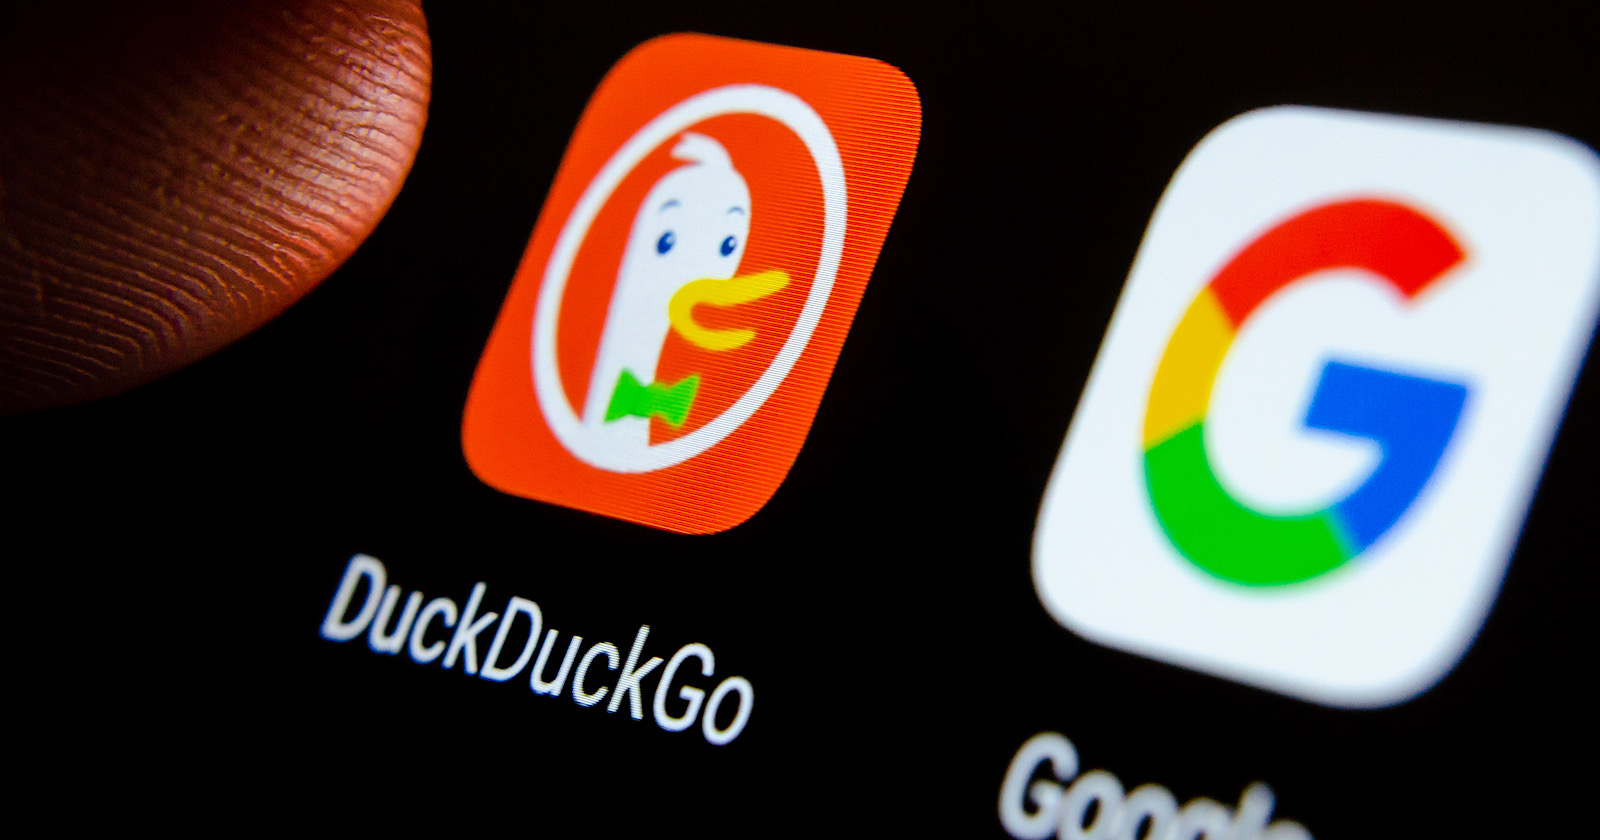 DuckDuckGo is Now a Default Search Engine Option on Android in the EU